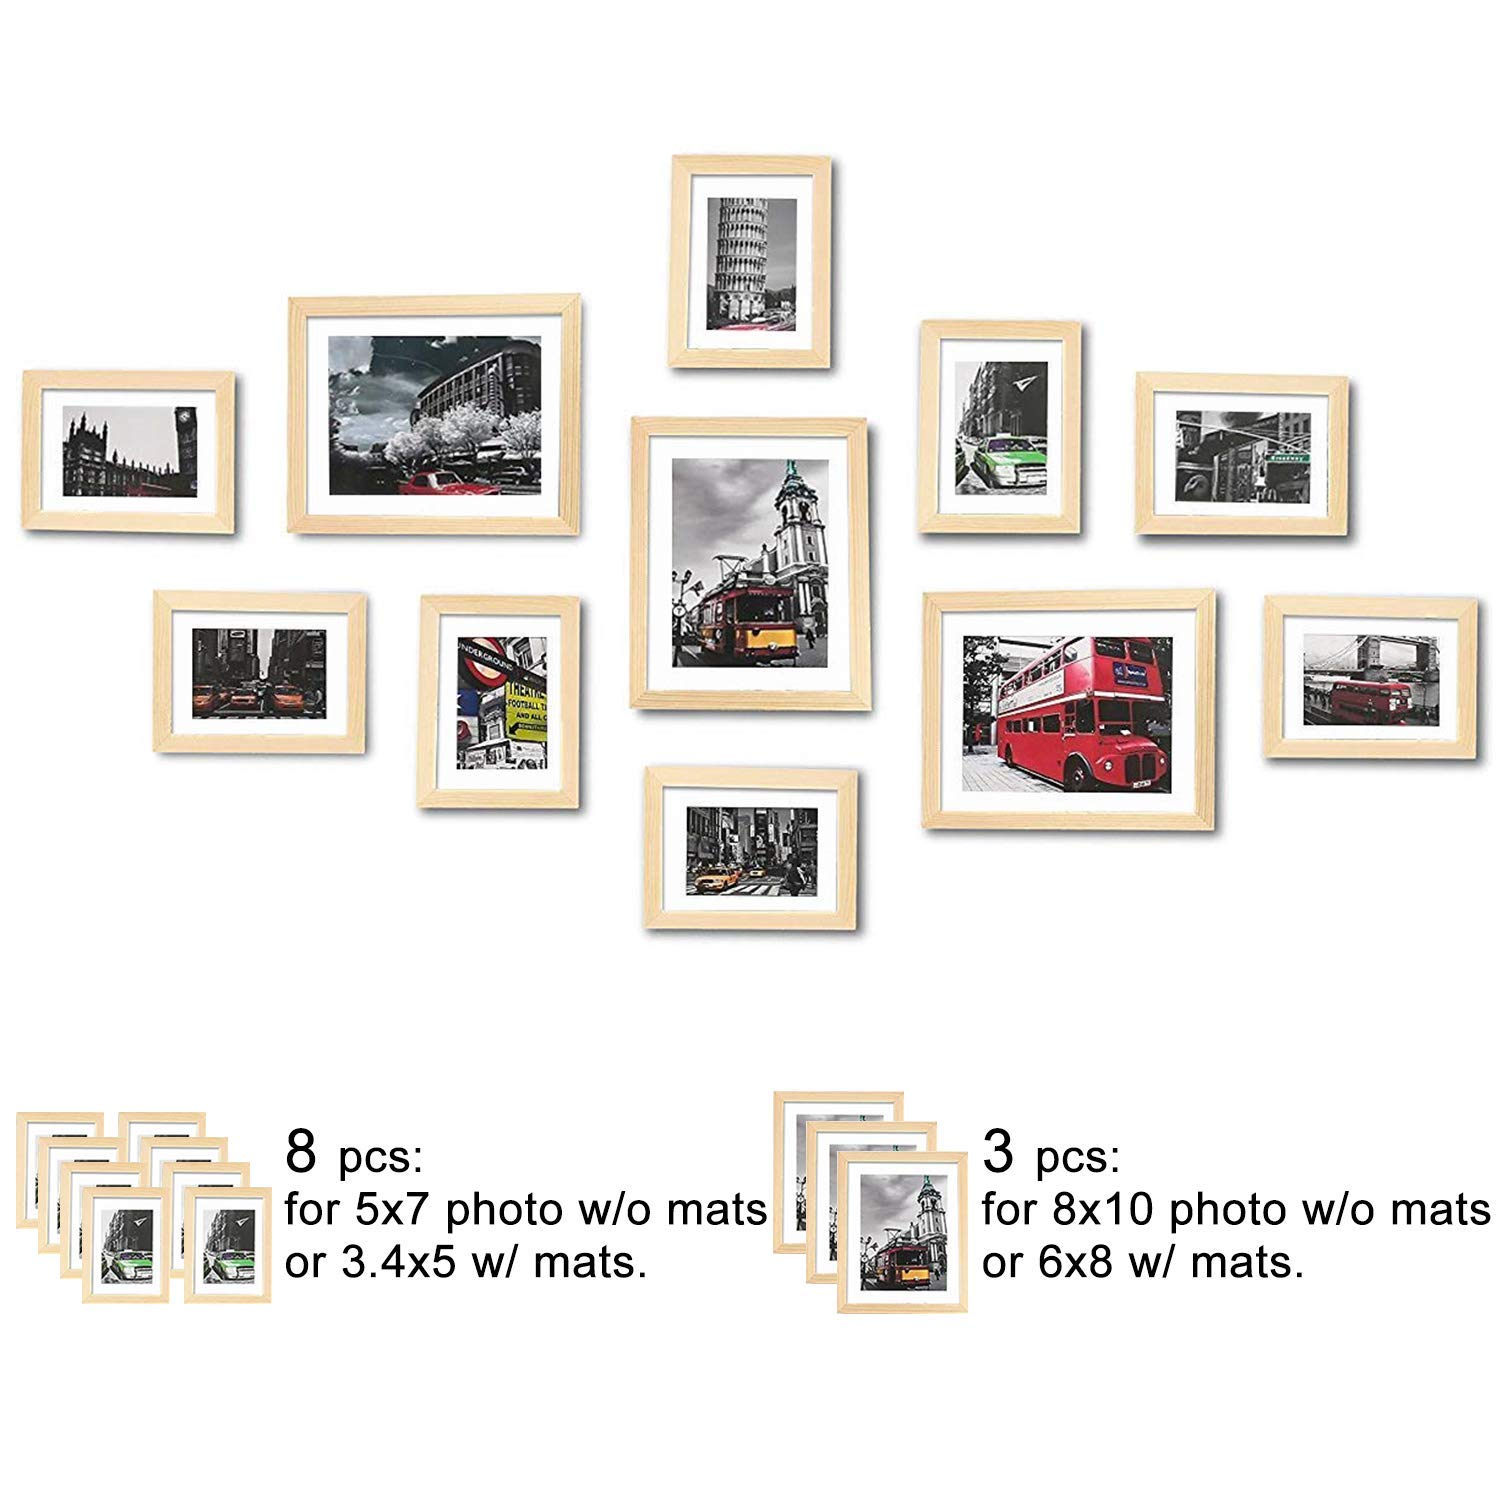 WOOD MEETS COLOR Wall Picture Frames Set of 11, with Hanging Template, Photo Mats, 3-8x10 and 8-5x7 Collage Frames (Original Color) by WOOD MEETS COLOR